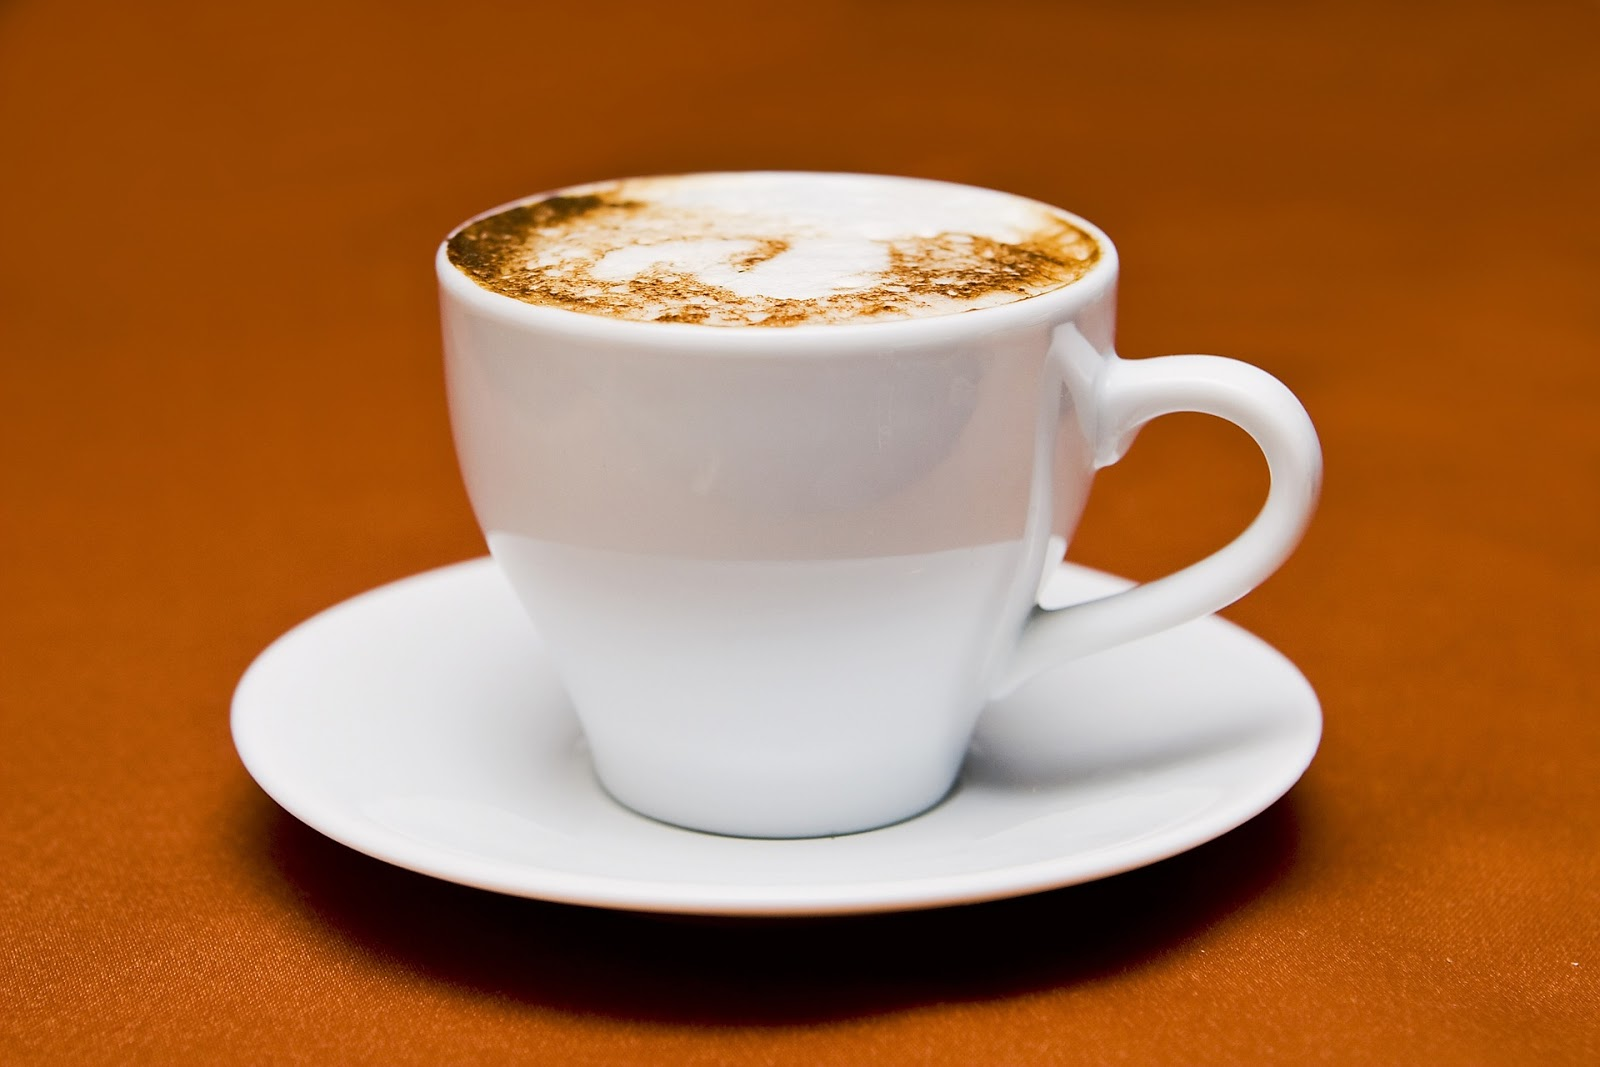 A cup of frothy cappuccino coffee